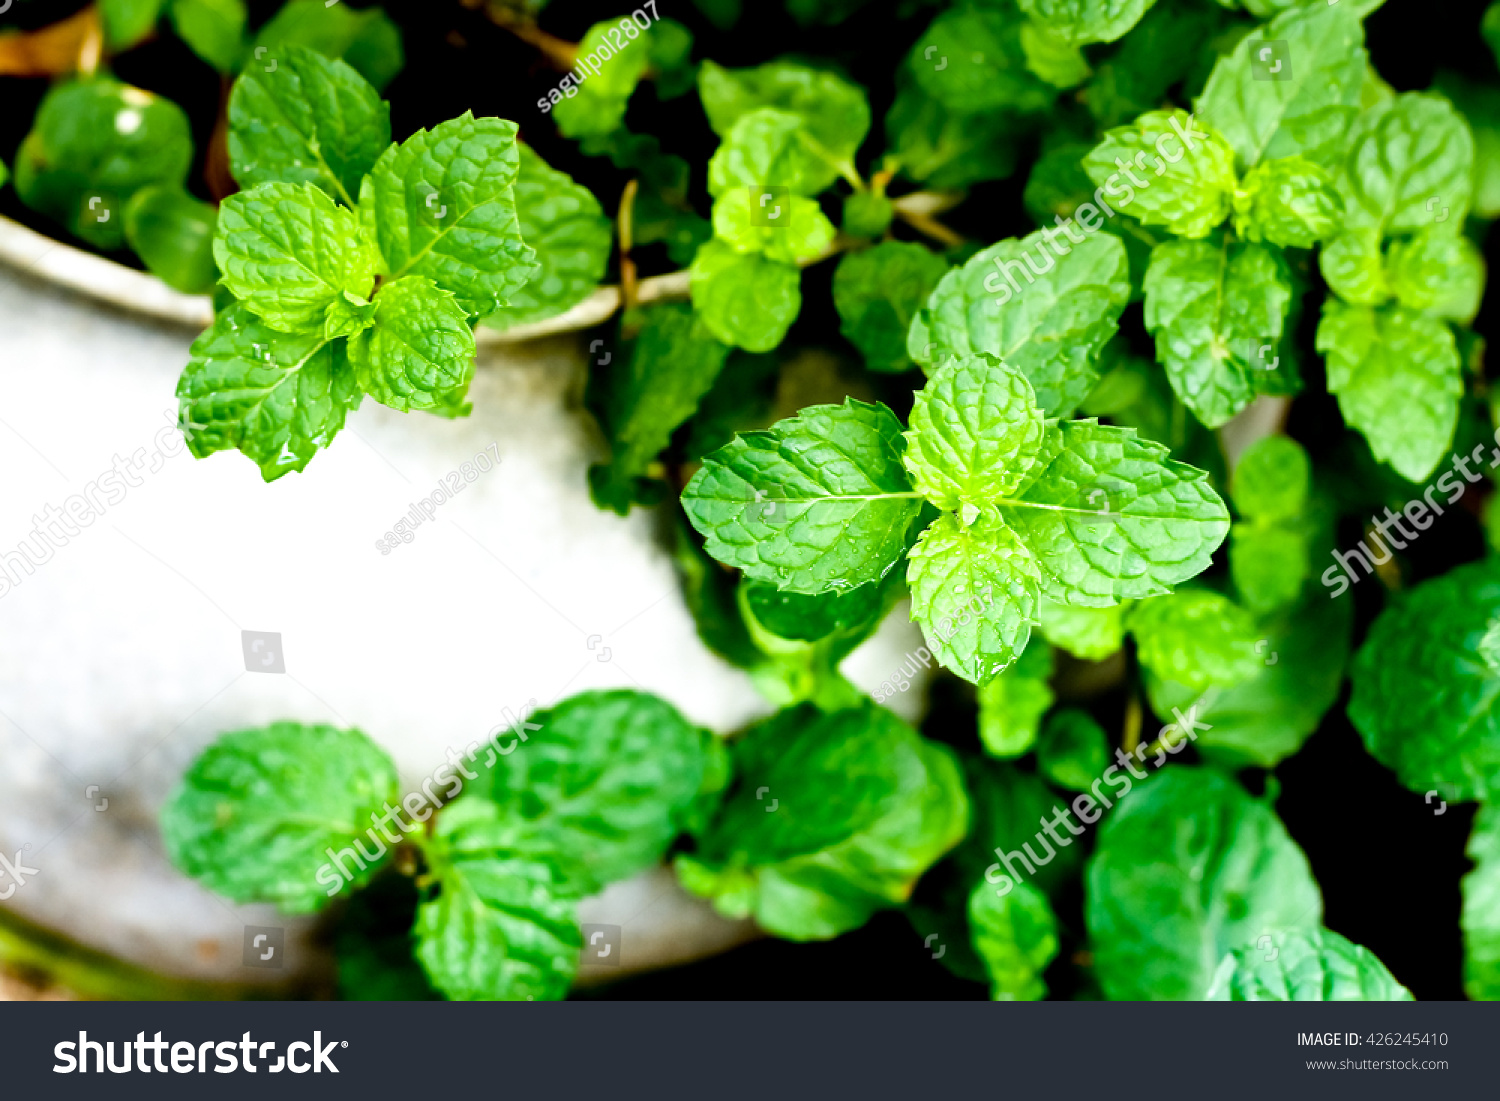 Mint in pots stock photo 426245410 shutterstock - Aromatic herbs pots multiple benefits ...